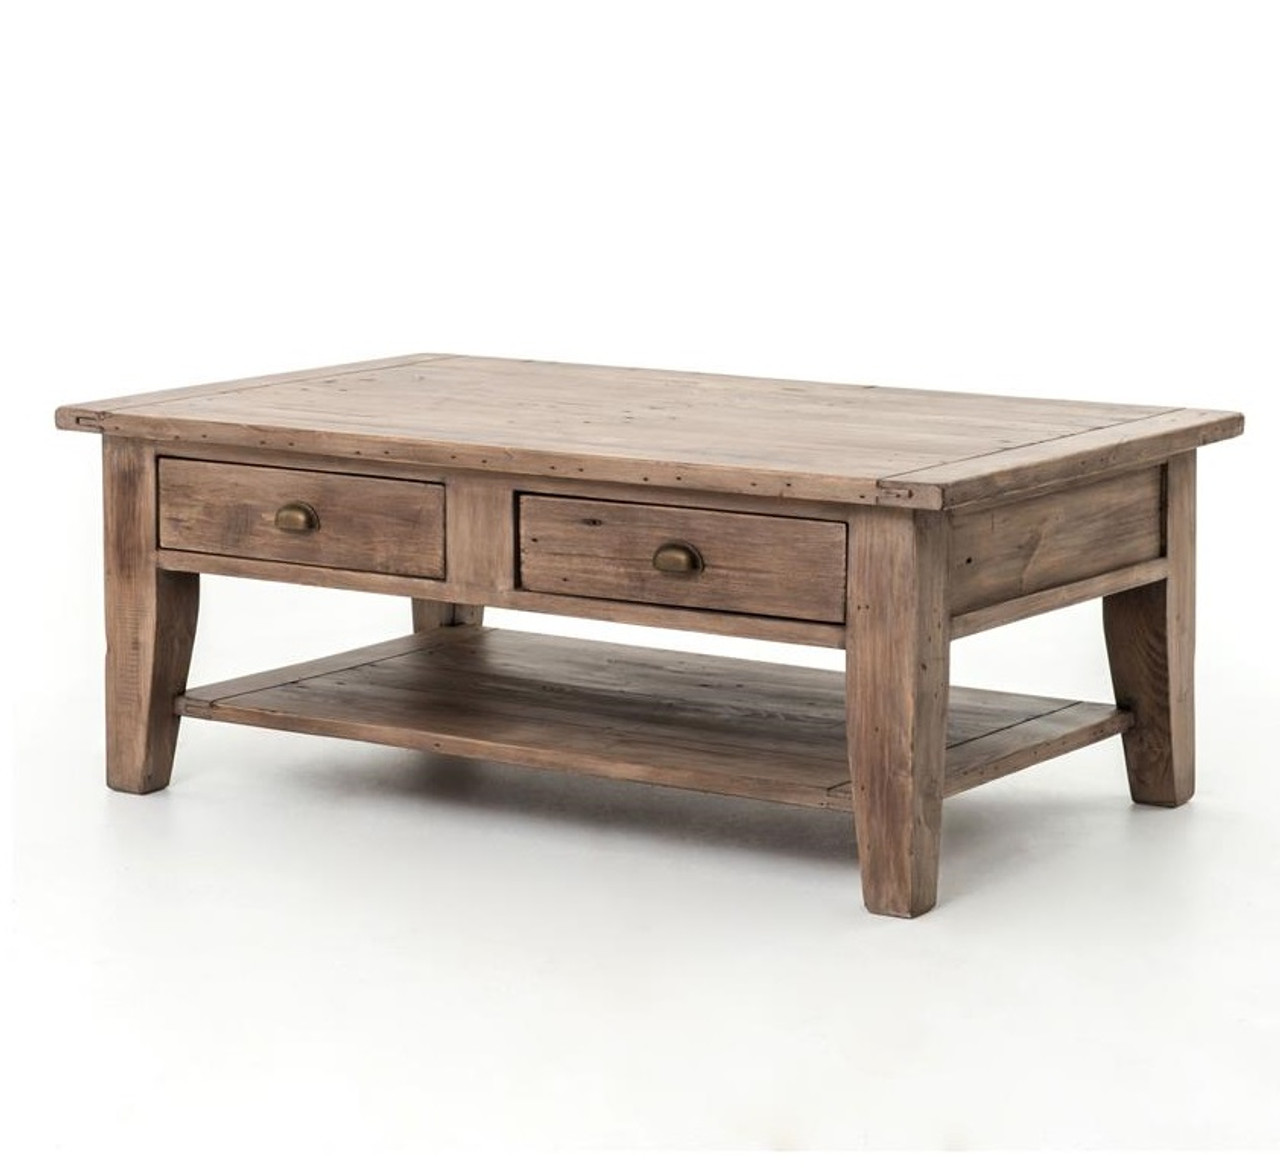 Rustic Coffee Table.Coastal Solid Wood Coffee Table With Drawers